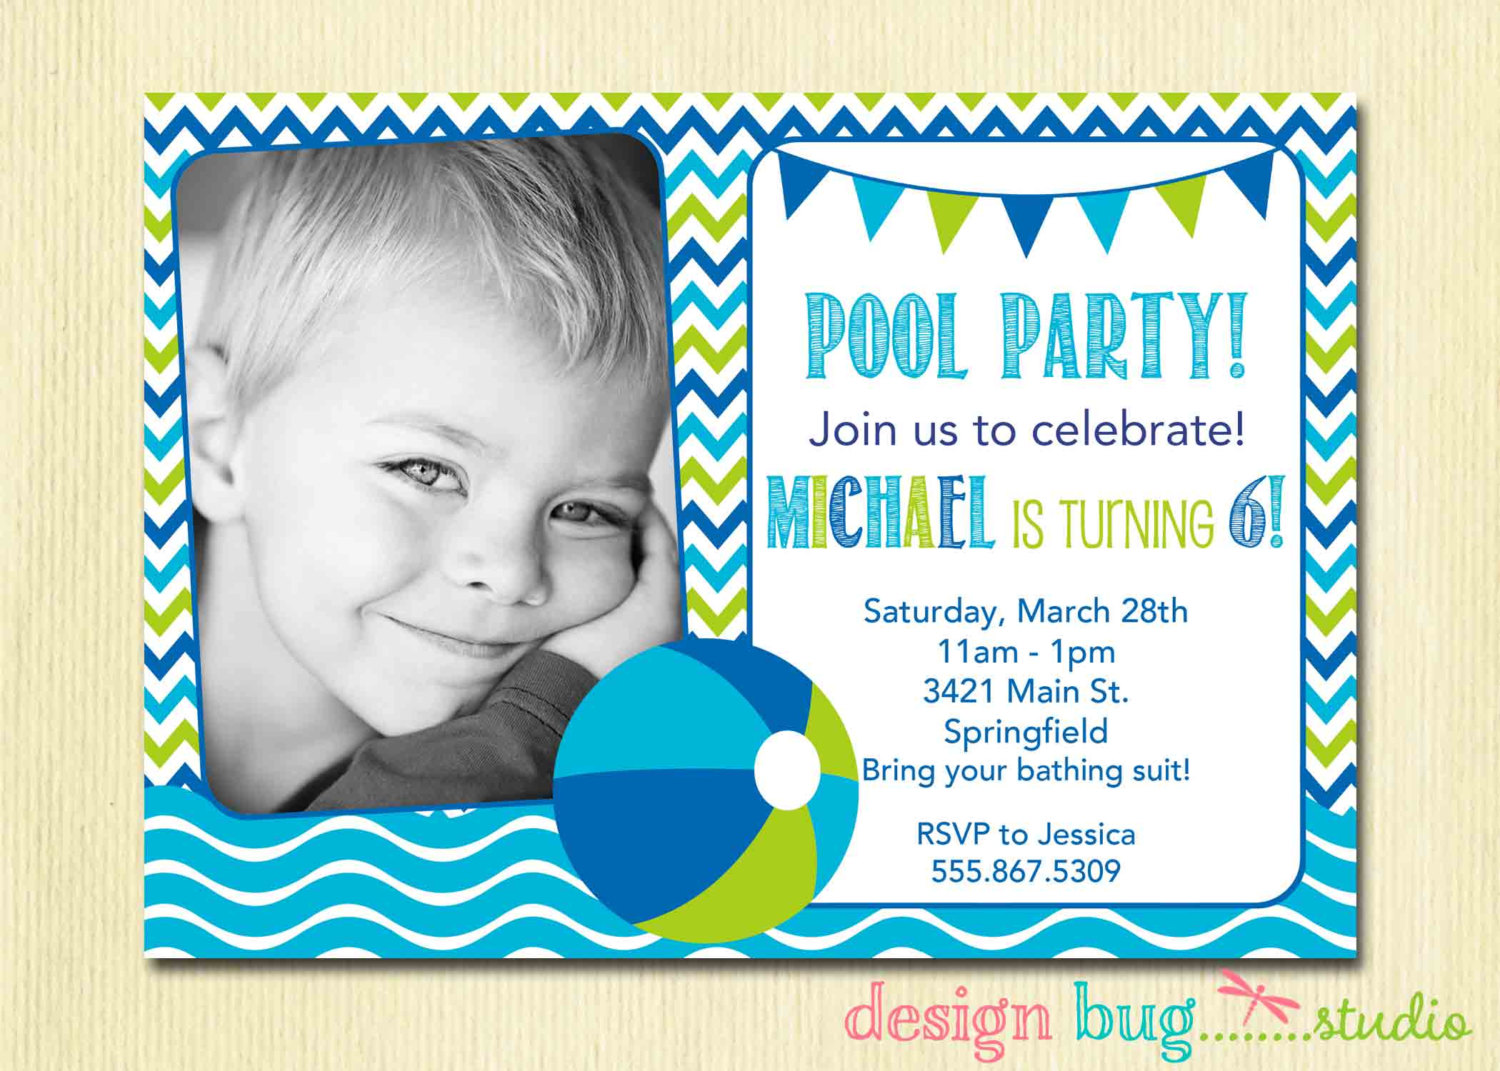 baby birthday invitation card design ; others-cute-pool-birthday-invitation-card-design-idea-for-baby-and-blue-green-letterings-colors